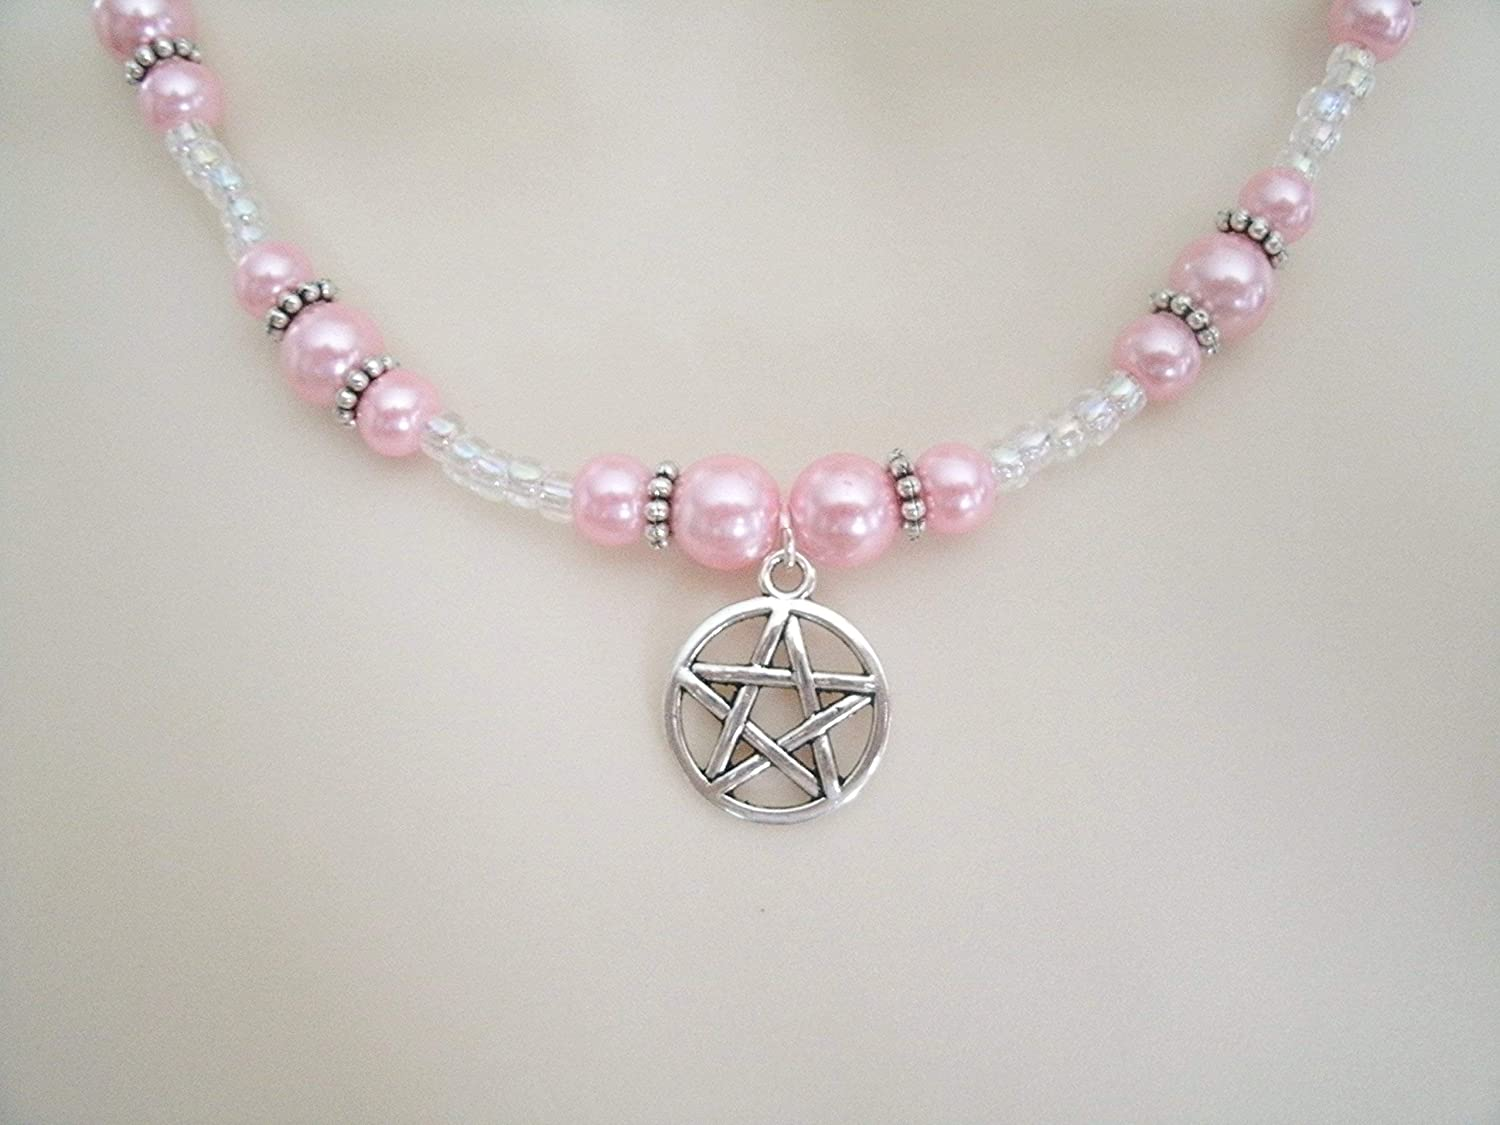 Limited time cheap sale Pink Pentacle Necklace handmade jewelry wit wiccan wicca Max 76% OFF pagan